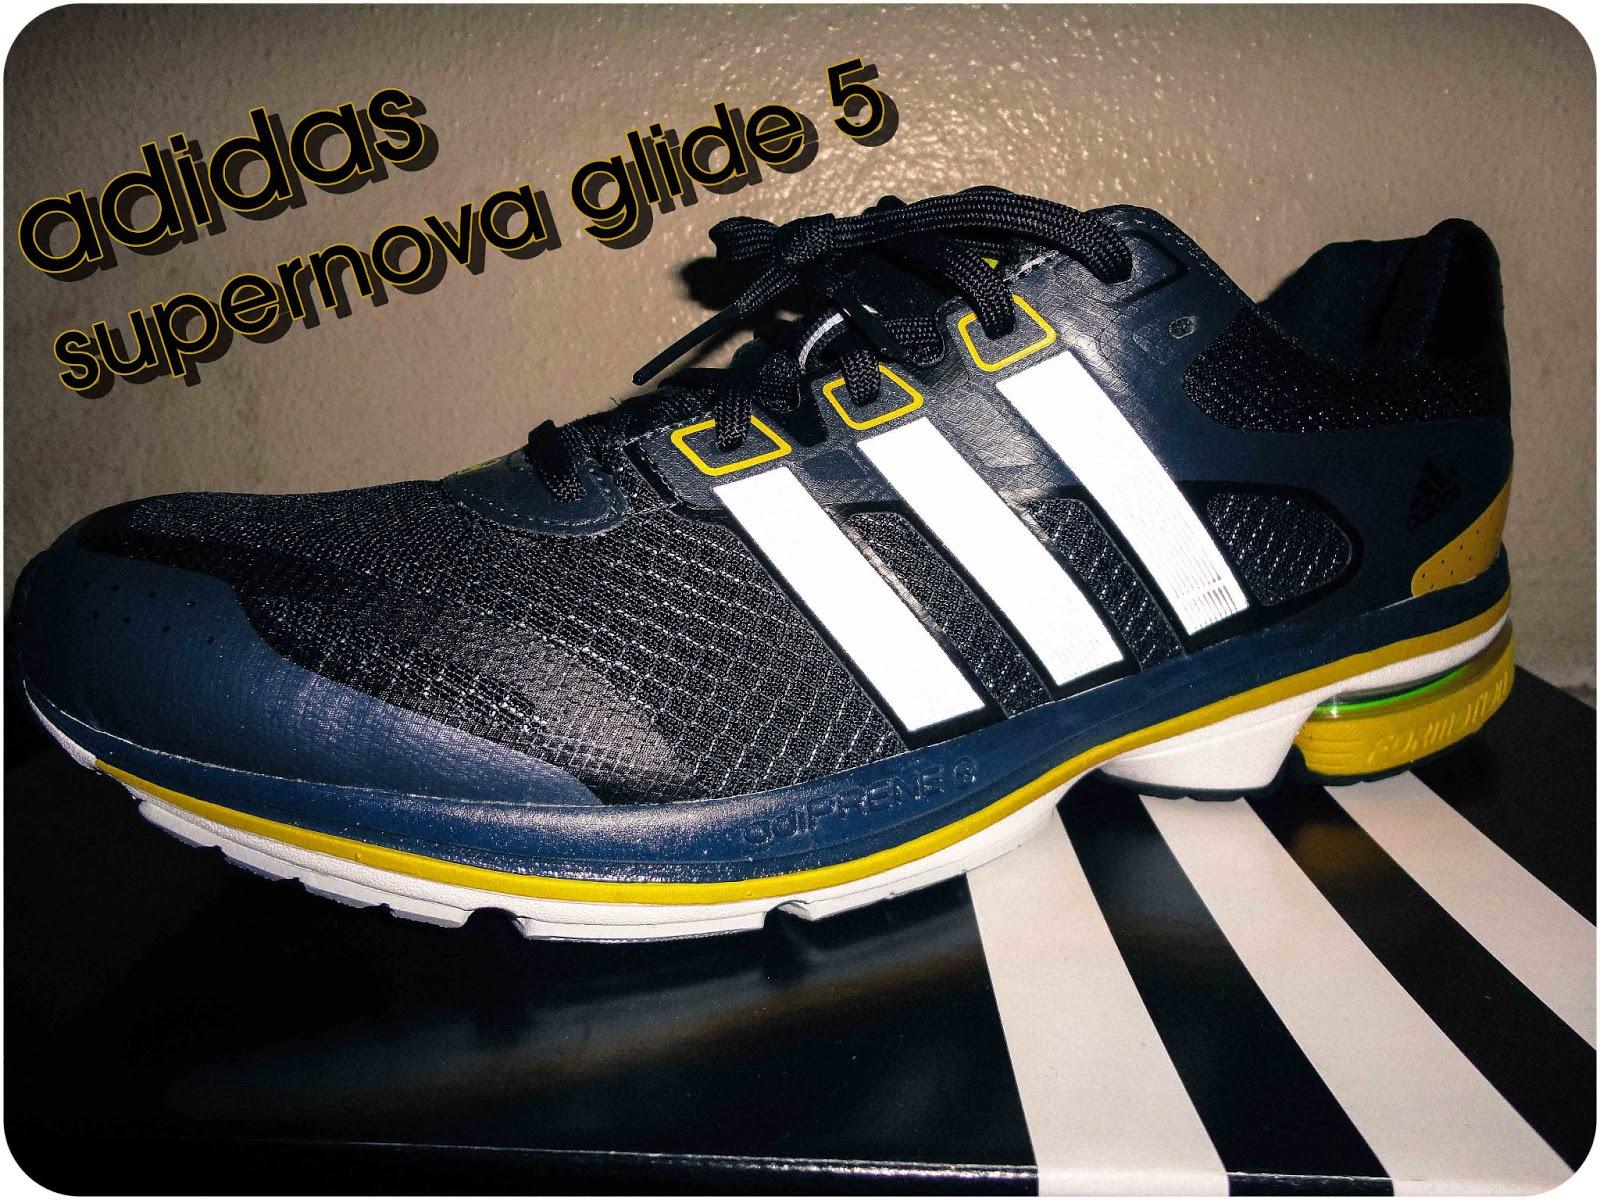 MoreAdidas Comfort Filippo Much Supernova And 5 Glide Running Il VLSMqjUzpG